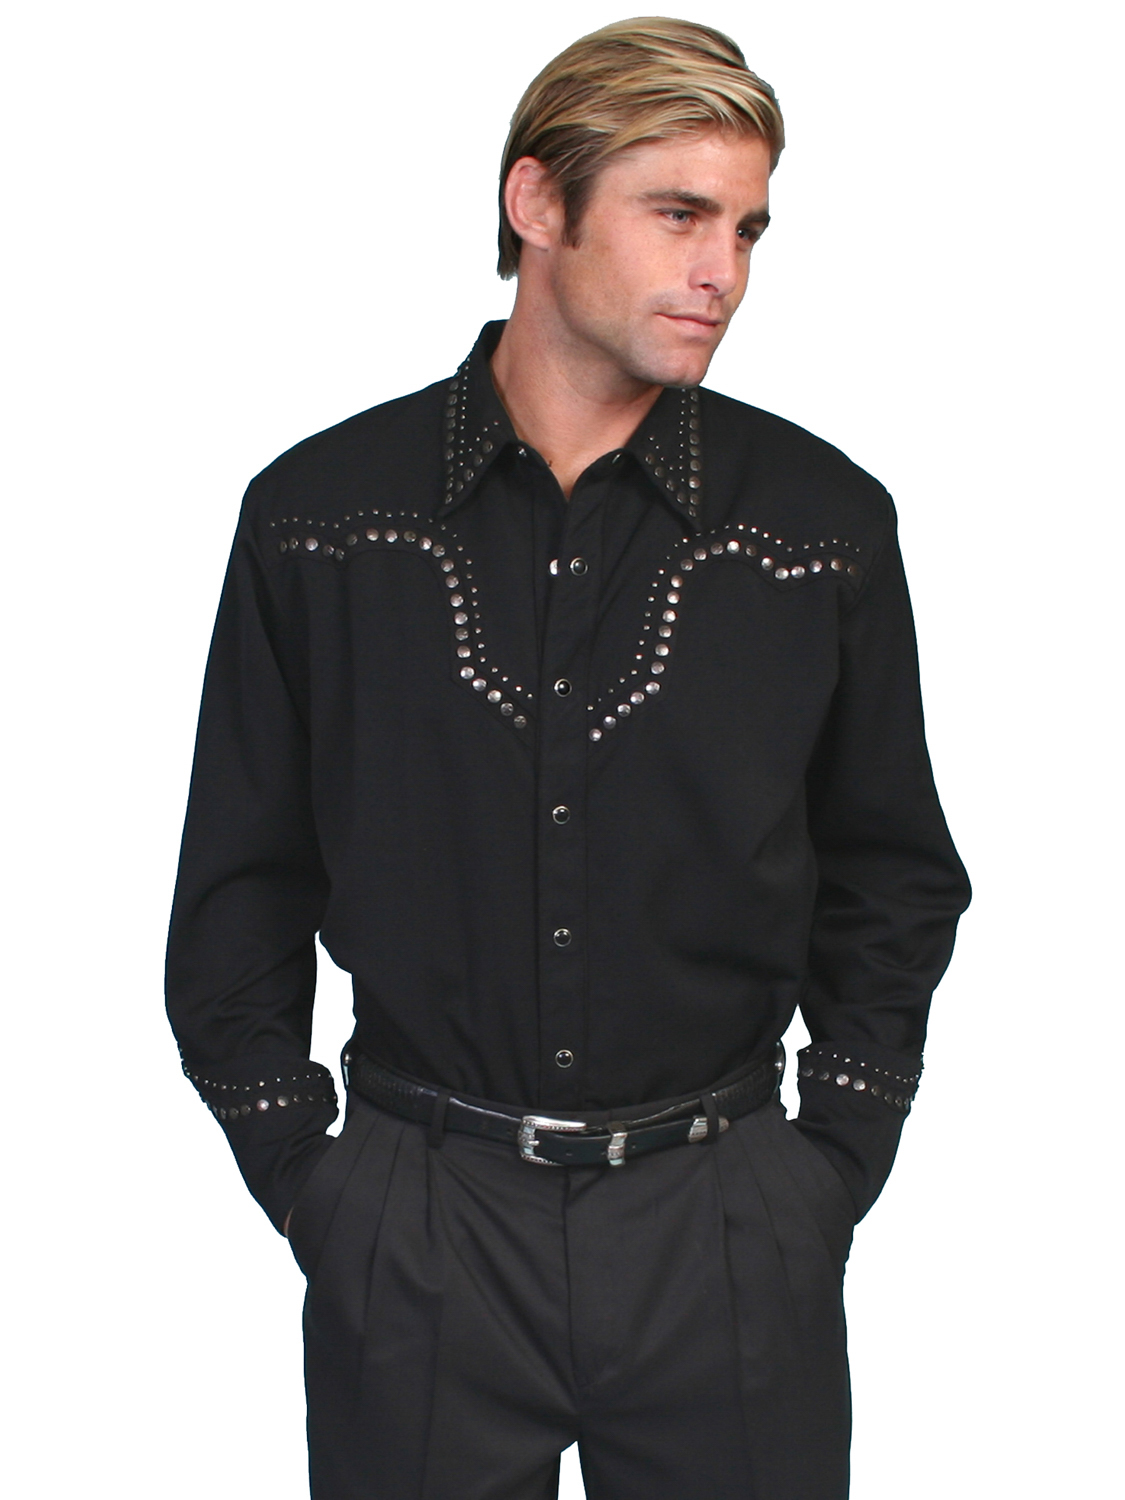 db1cc40b73ad27 Get the quality and comfort you want with men s western wear from  Cavender s. We sell